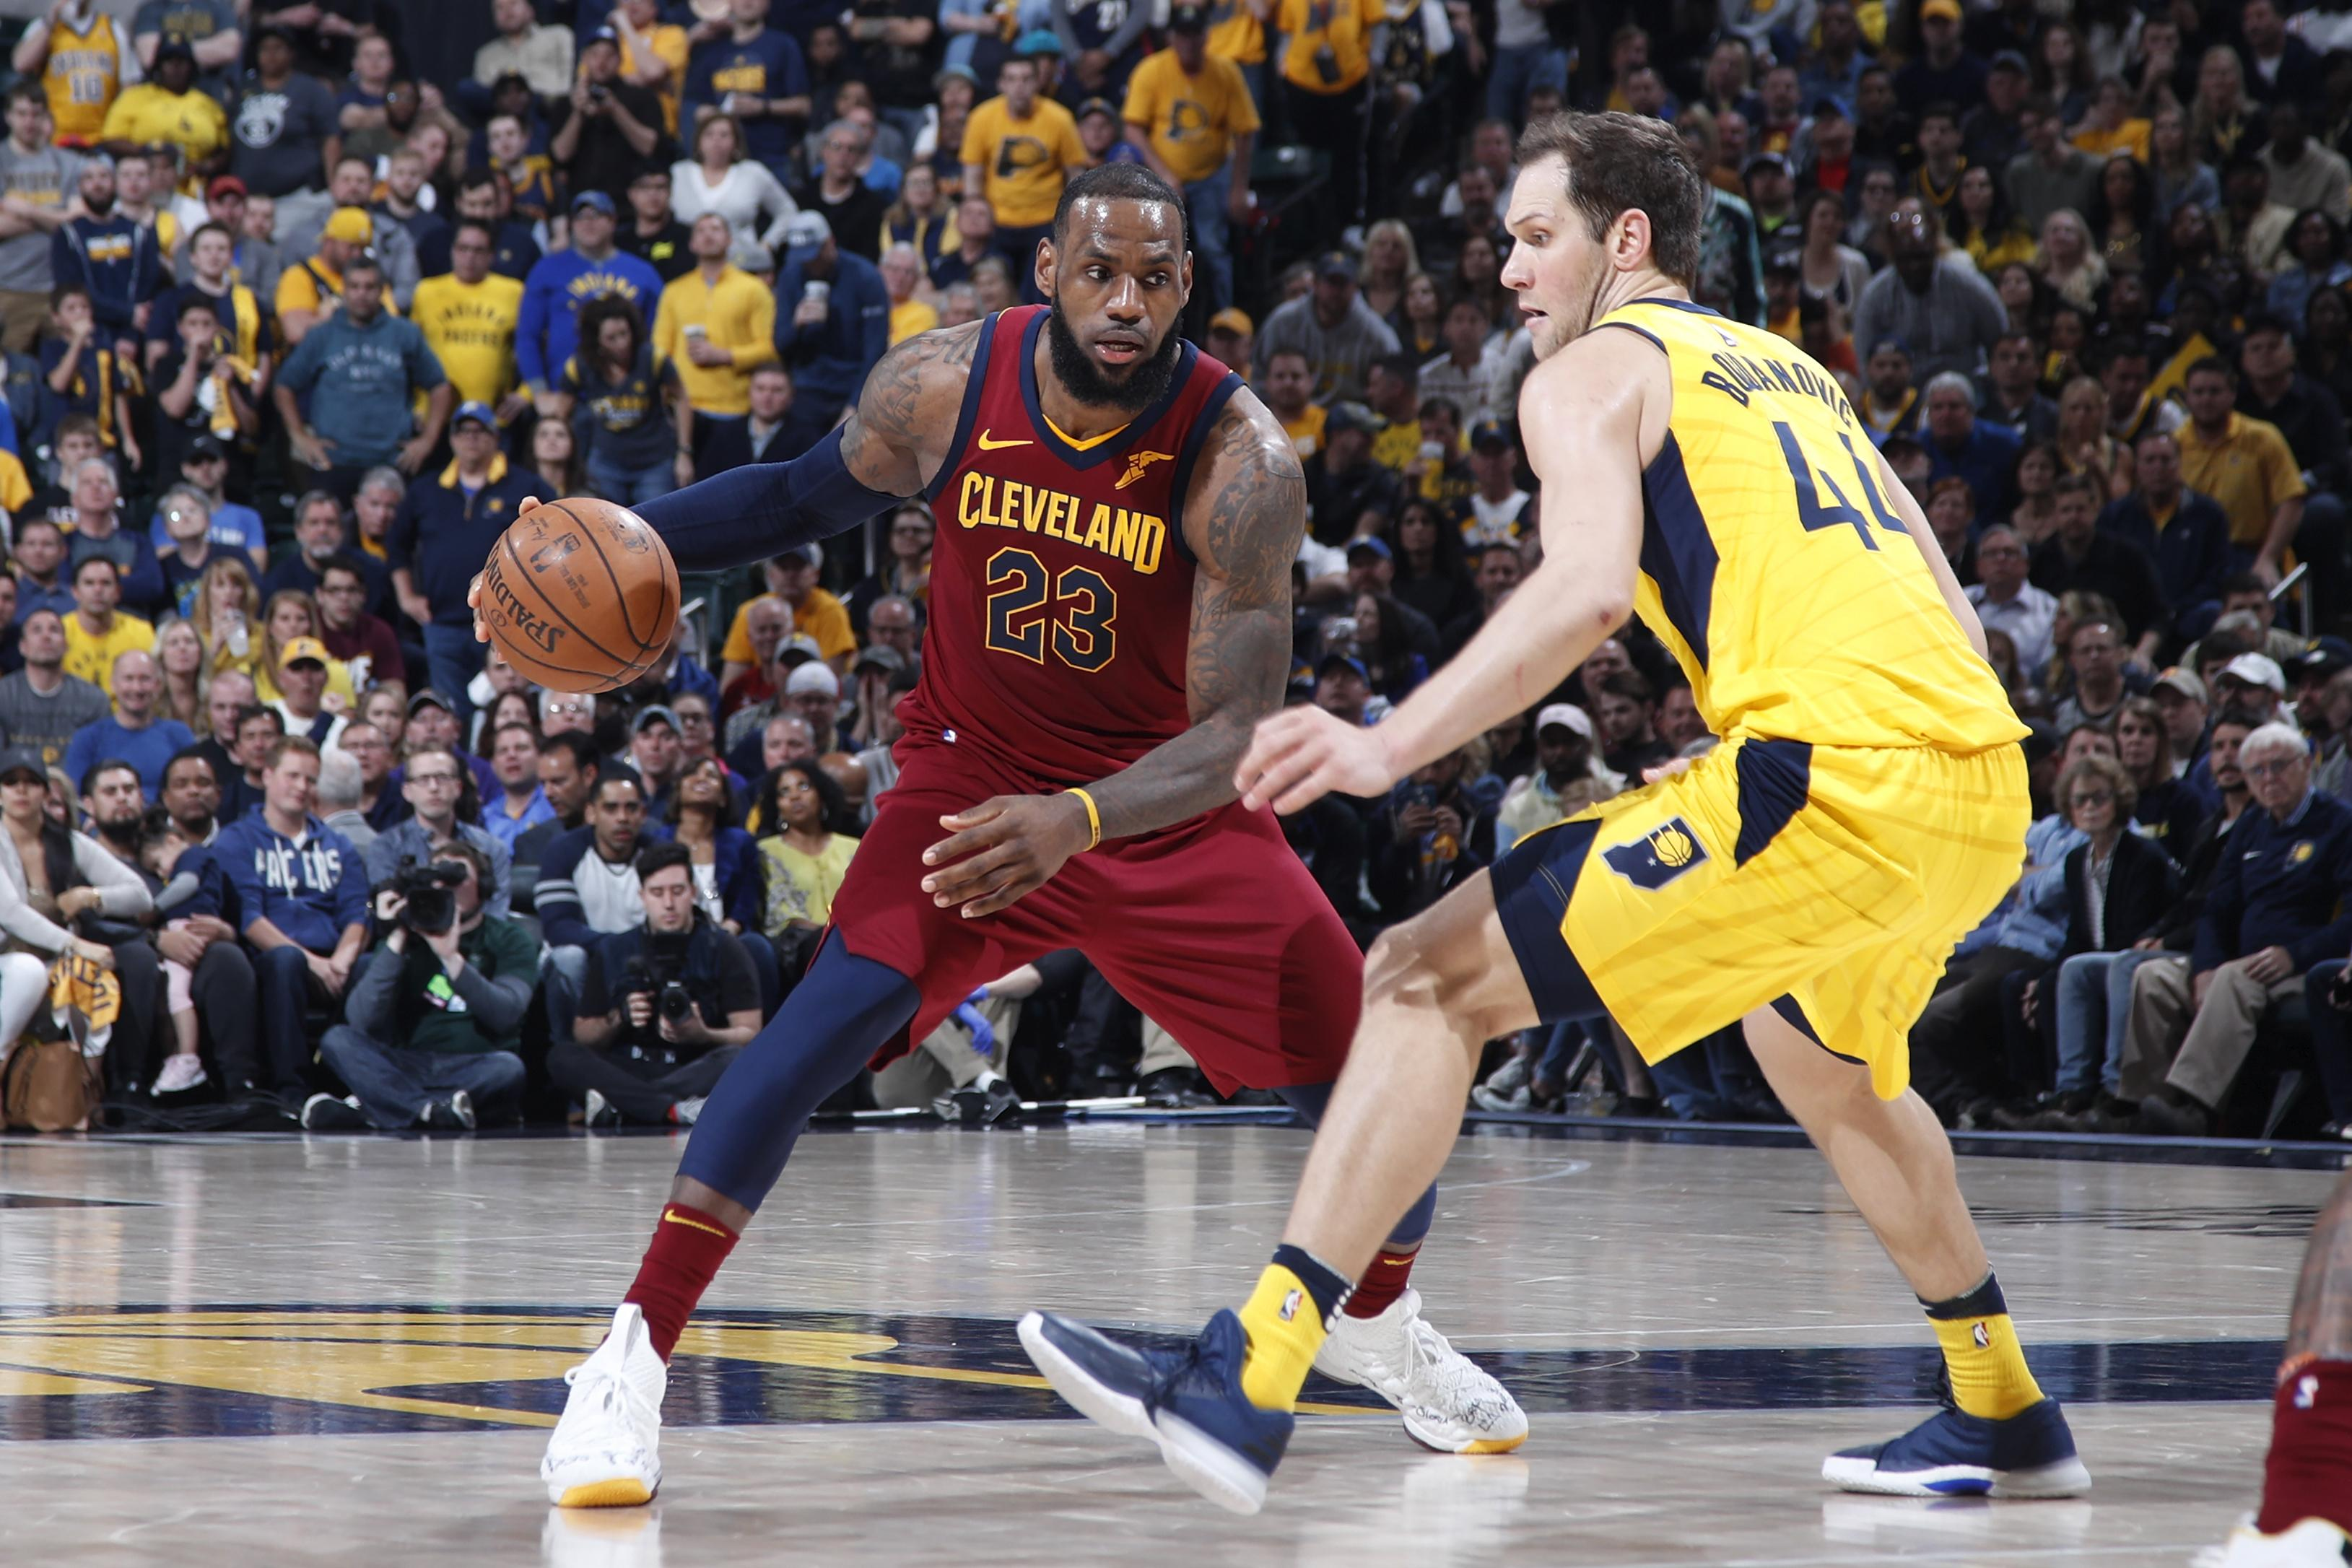 Pacers player sends strong message to LeBron after Game 5 Video